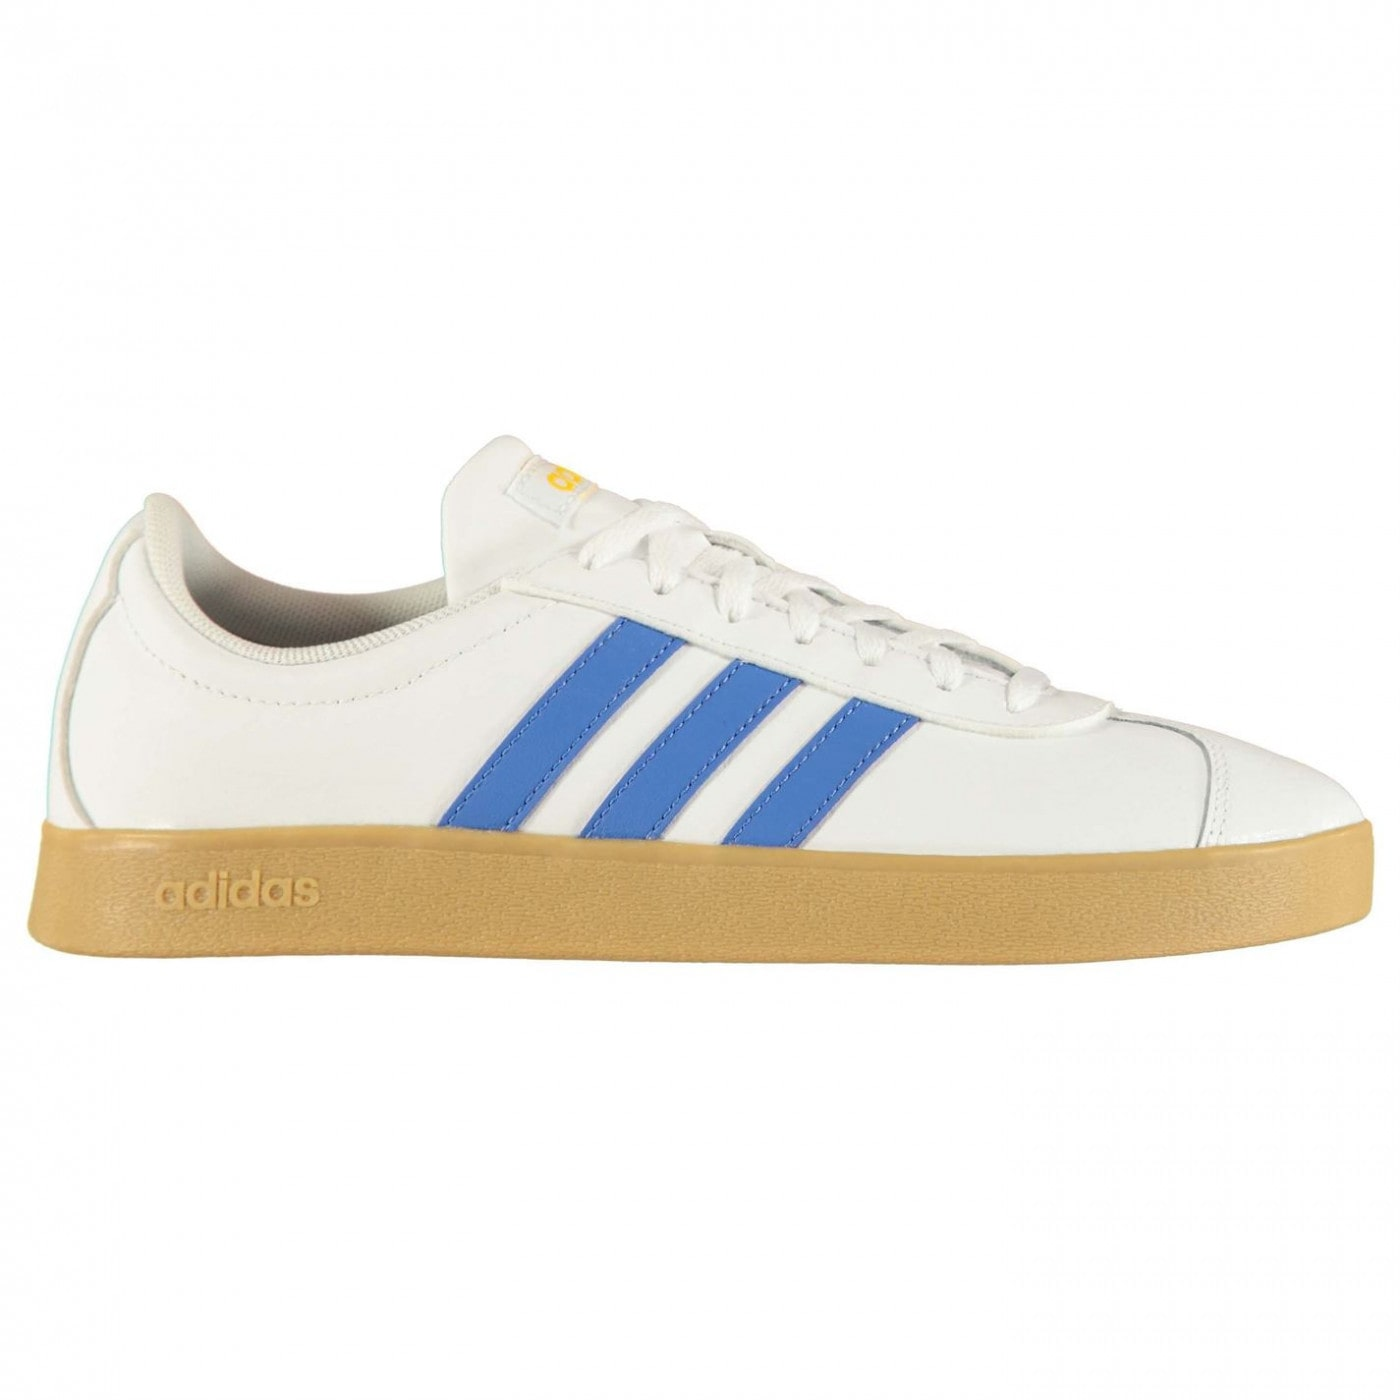 Adidas VL Court 2 Leather Trainers Mens